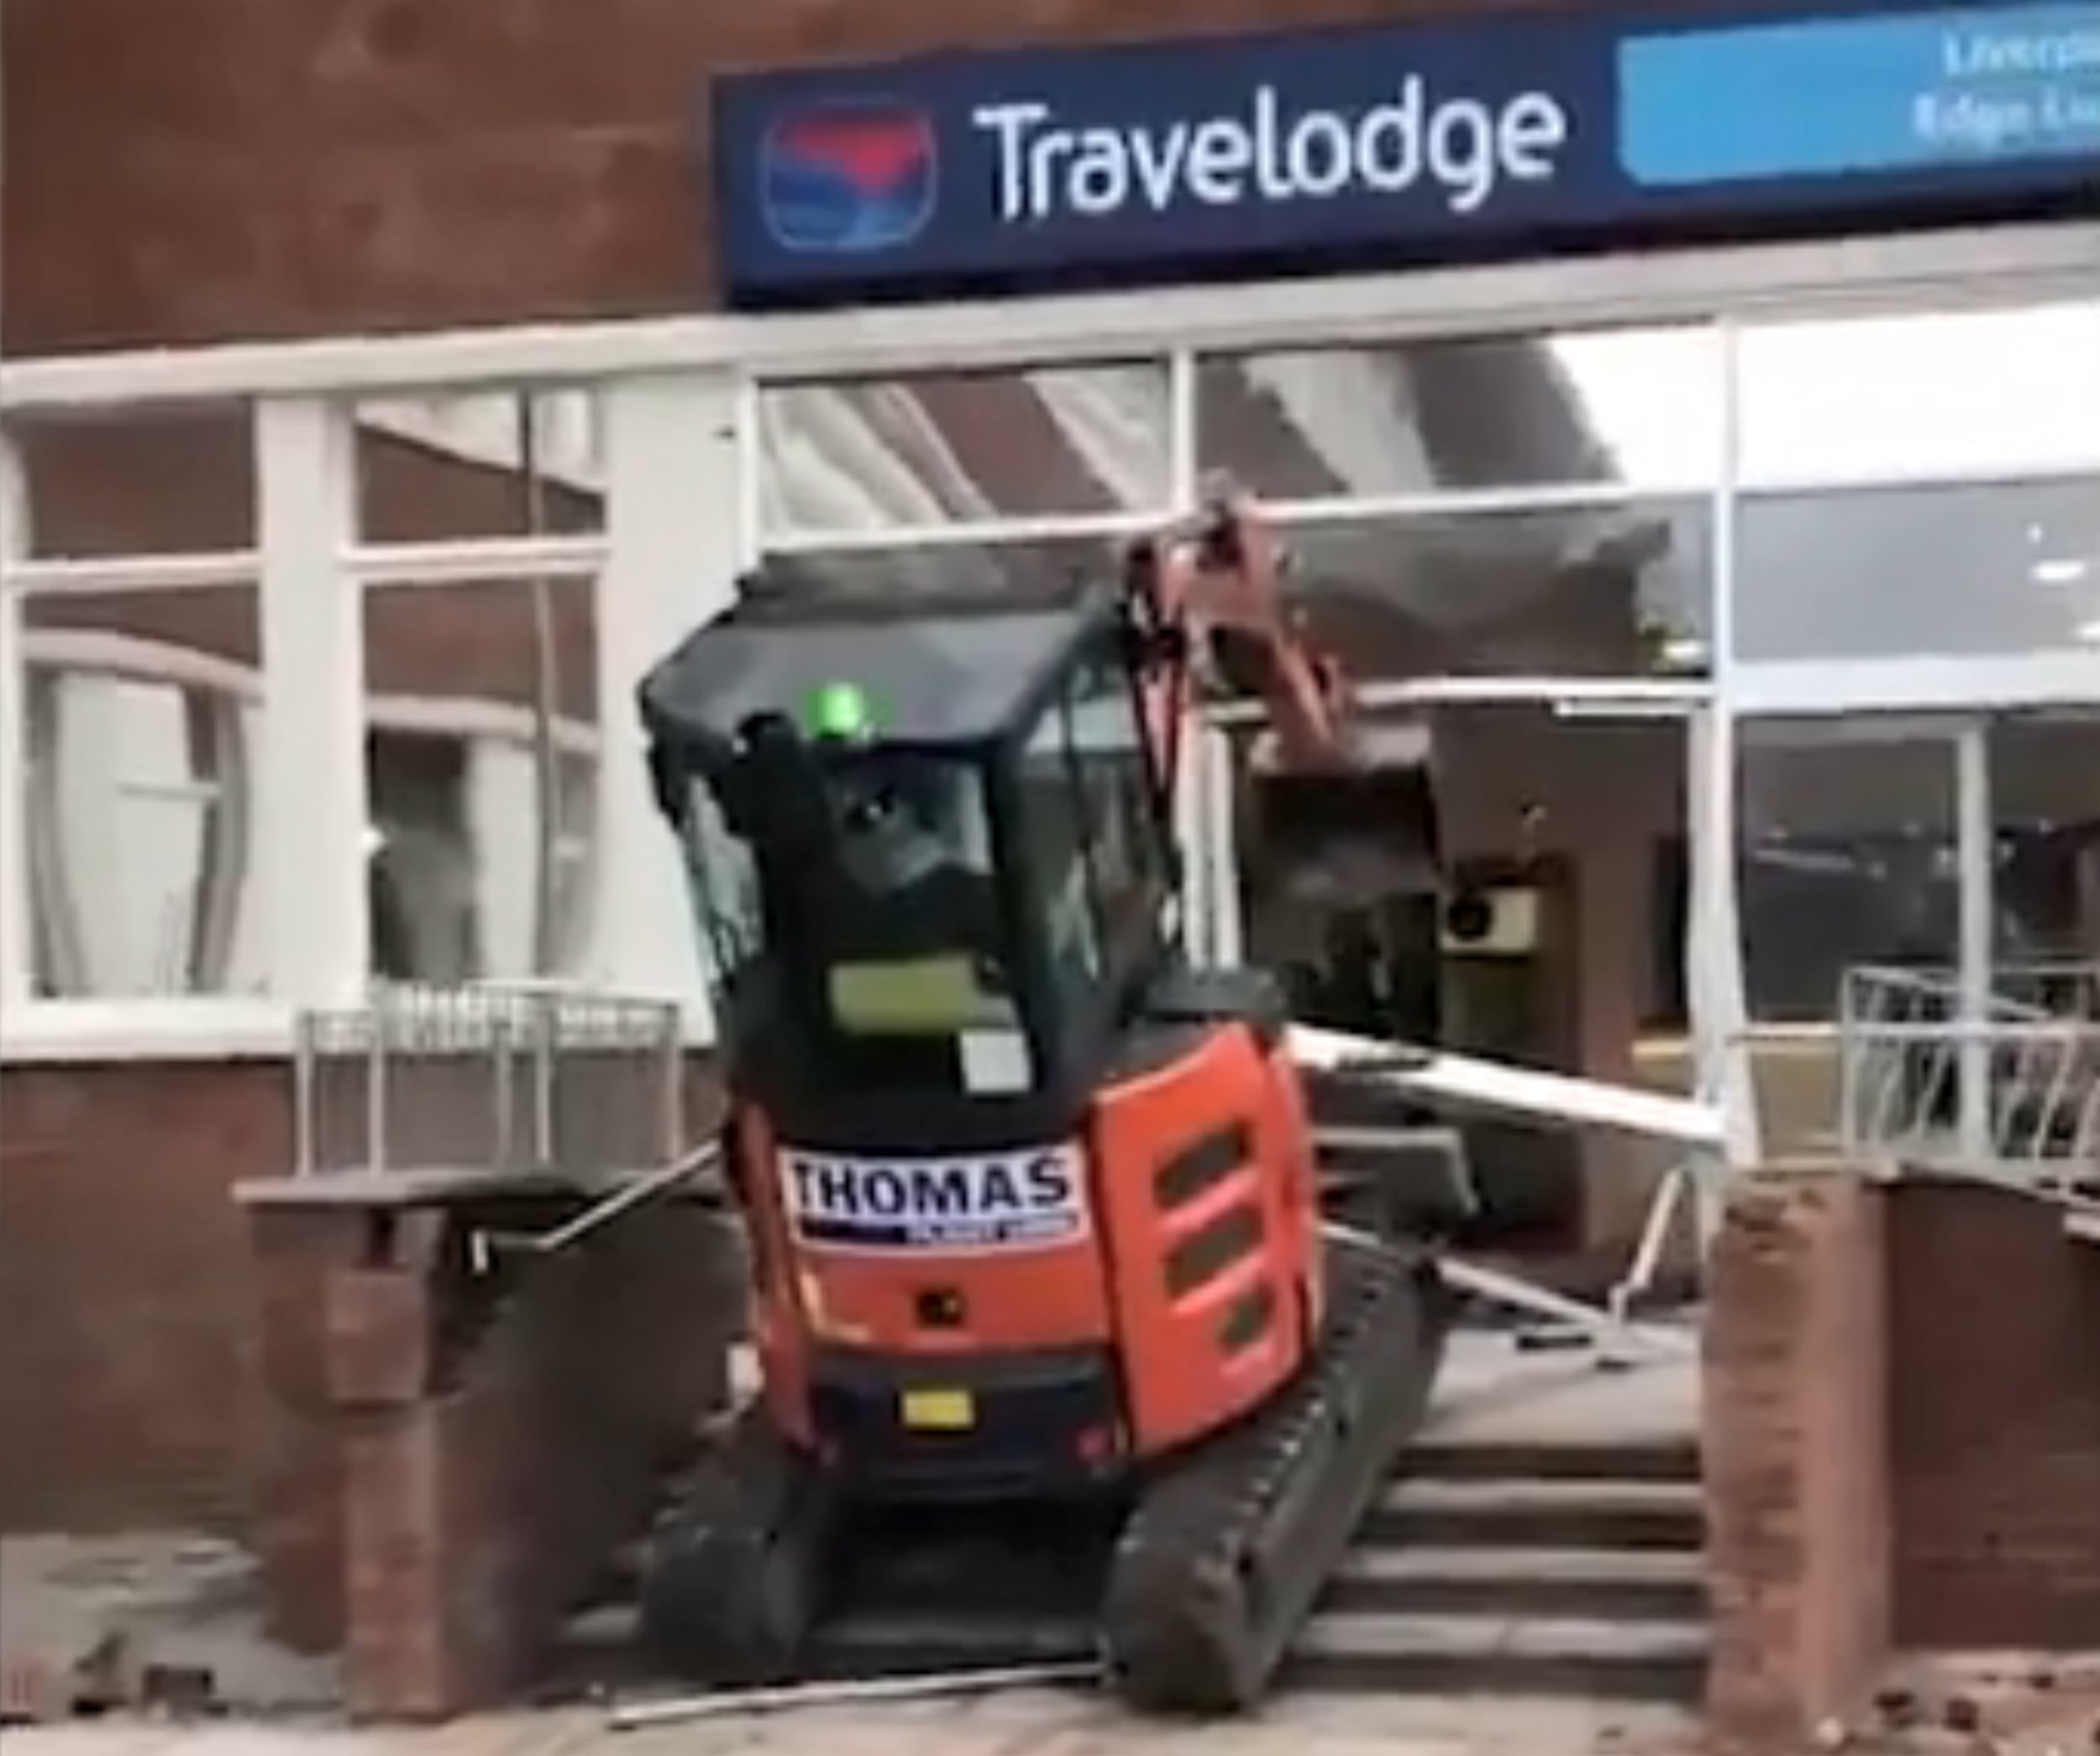 This unbelievable footage shows the bizarre moment a digger driver ploughed into a new hotel building during a bizarre rampage. The video was captured shortly before 3pm today when the plant vehicle can be seen mounting the steps in front of the hotel at Liverpool Innovation Park on Edge Lane. After reaching the top of the steps, the arm of the digger is sent crashing through the glass at the top of the door before tearing through the entrance. A few moments later, the digger rolls back out of the entrance and down the steps but the determined operator heads back up and through the front door. Once inside the reception of the hotel, the digger then proceeds to crash into walls and the front desk. A number of workers can be seen cheering on the driver while videoing the incident on their phones - others appear to be trying to stop him. Images Liverpool Echo